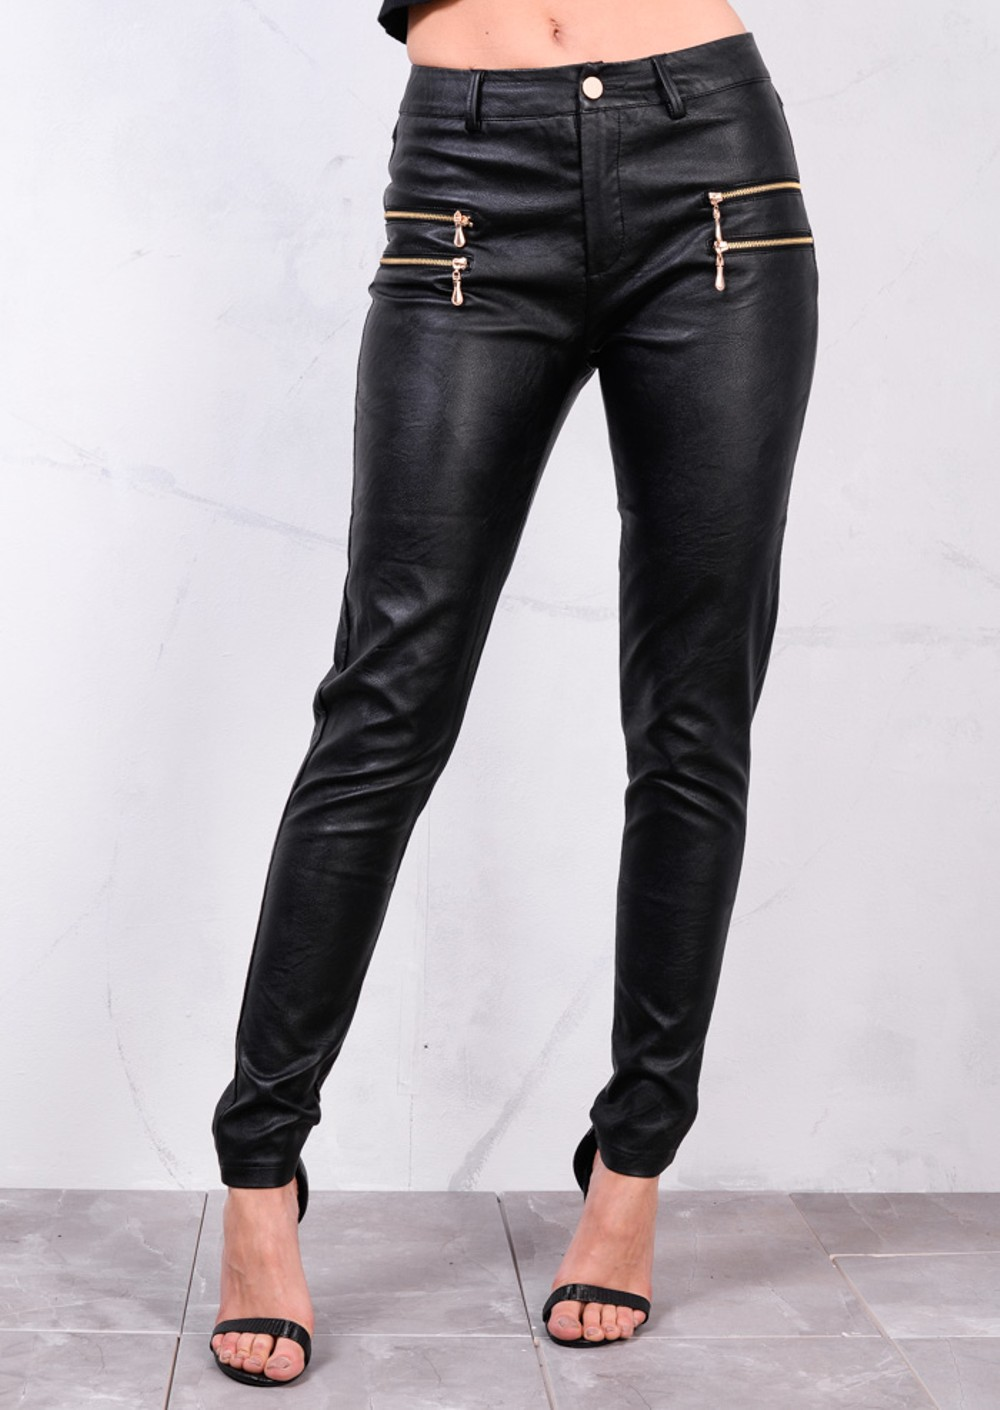 Leather pants have been a defense gear for riders. It is have a tendency to be nearly mandatory through look upon to bikers as well as selecting a wonderful set is not an easy as several individuals might consider. Leather trousers as well as leather jackets are not only seen a fashion announcement, other than in some cases they are utilized.